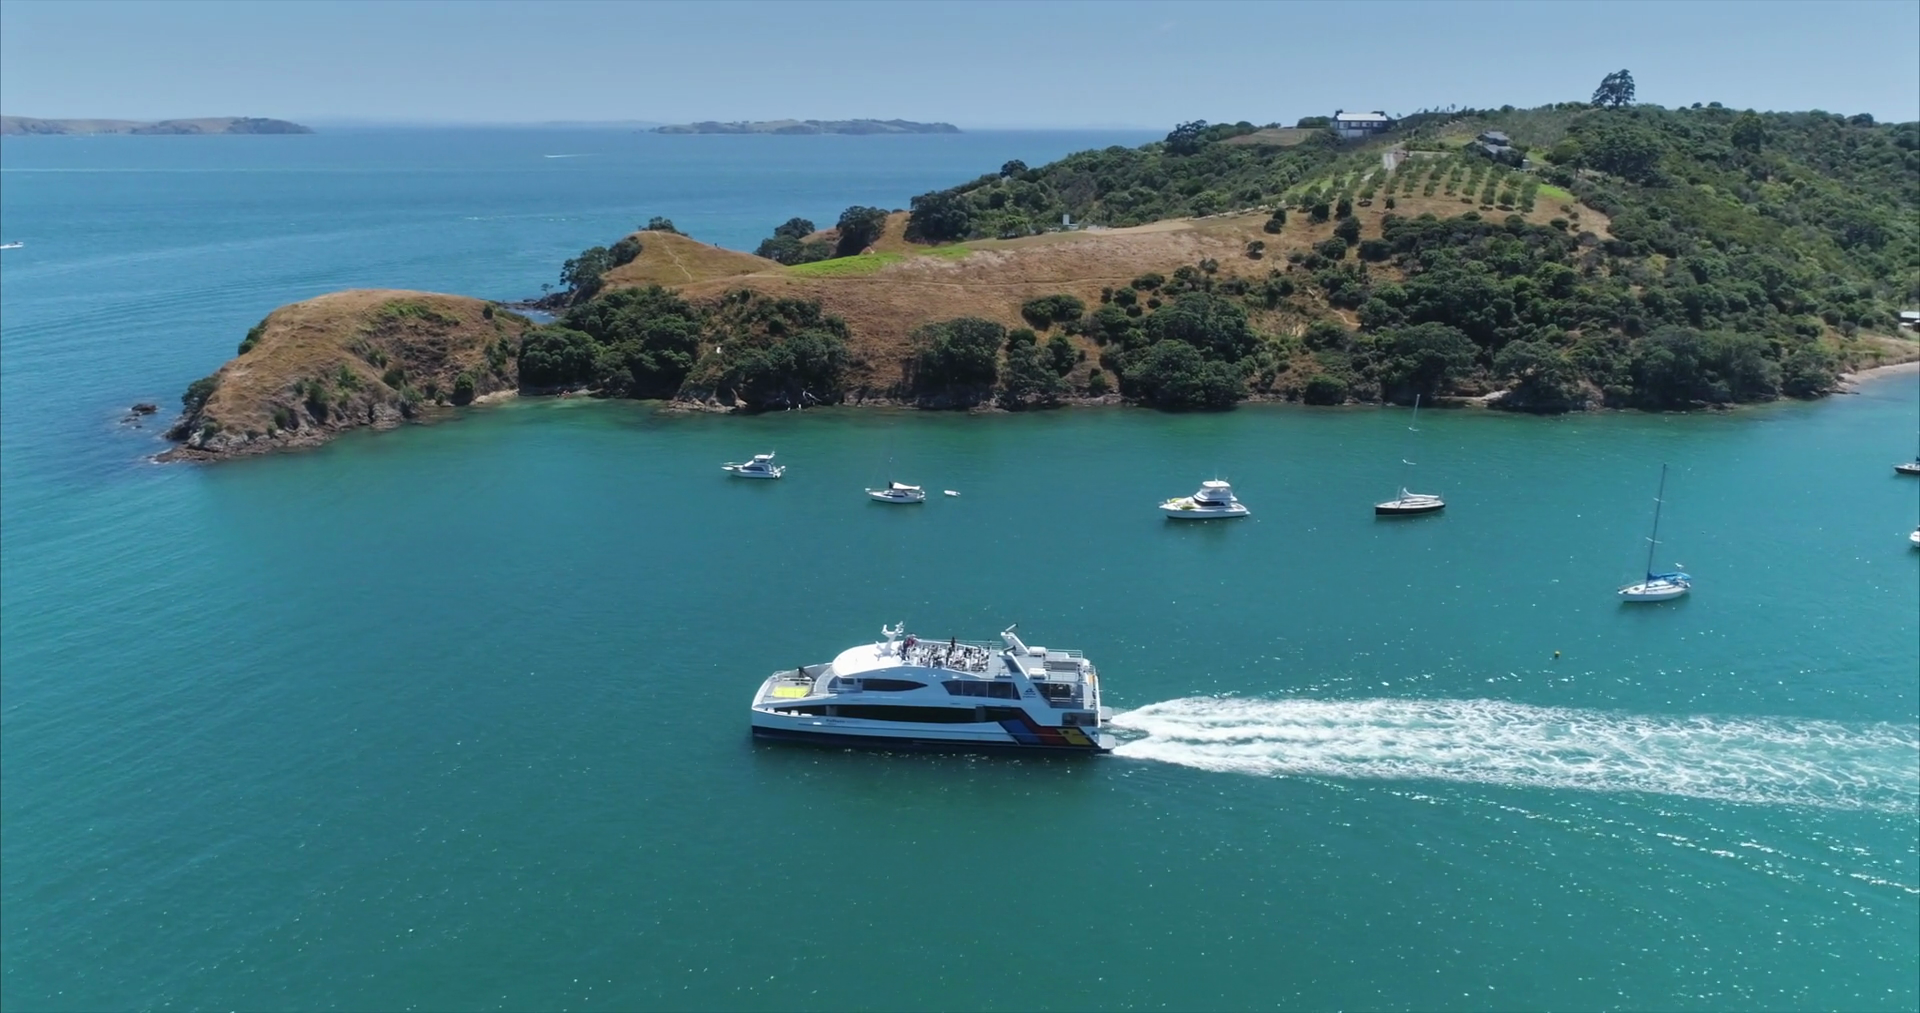 videoblocks-aerial-view-of-ferry-at-waiheke-island-auckland-new-zealand_sxczv_bpl_thumbnail-full05.png